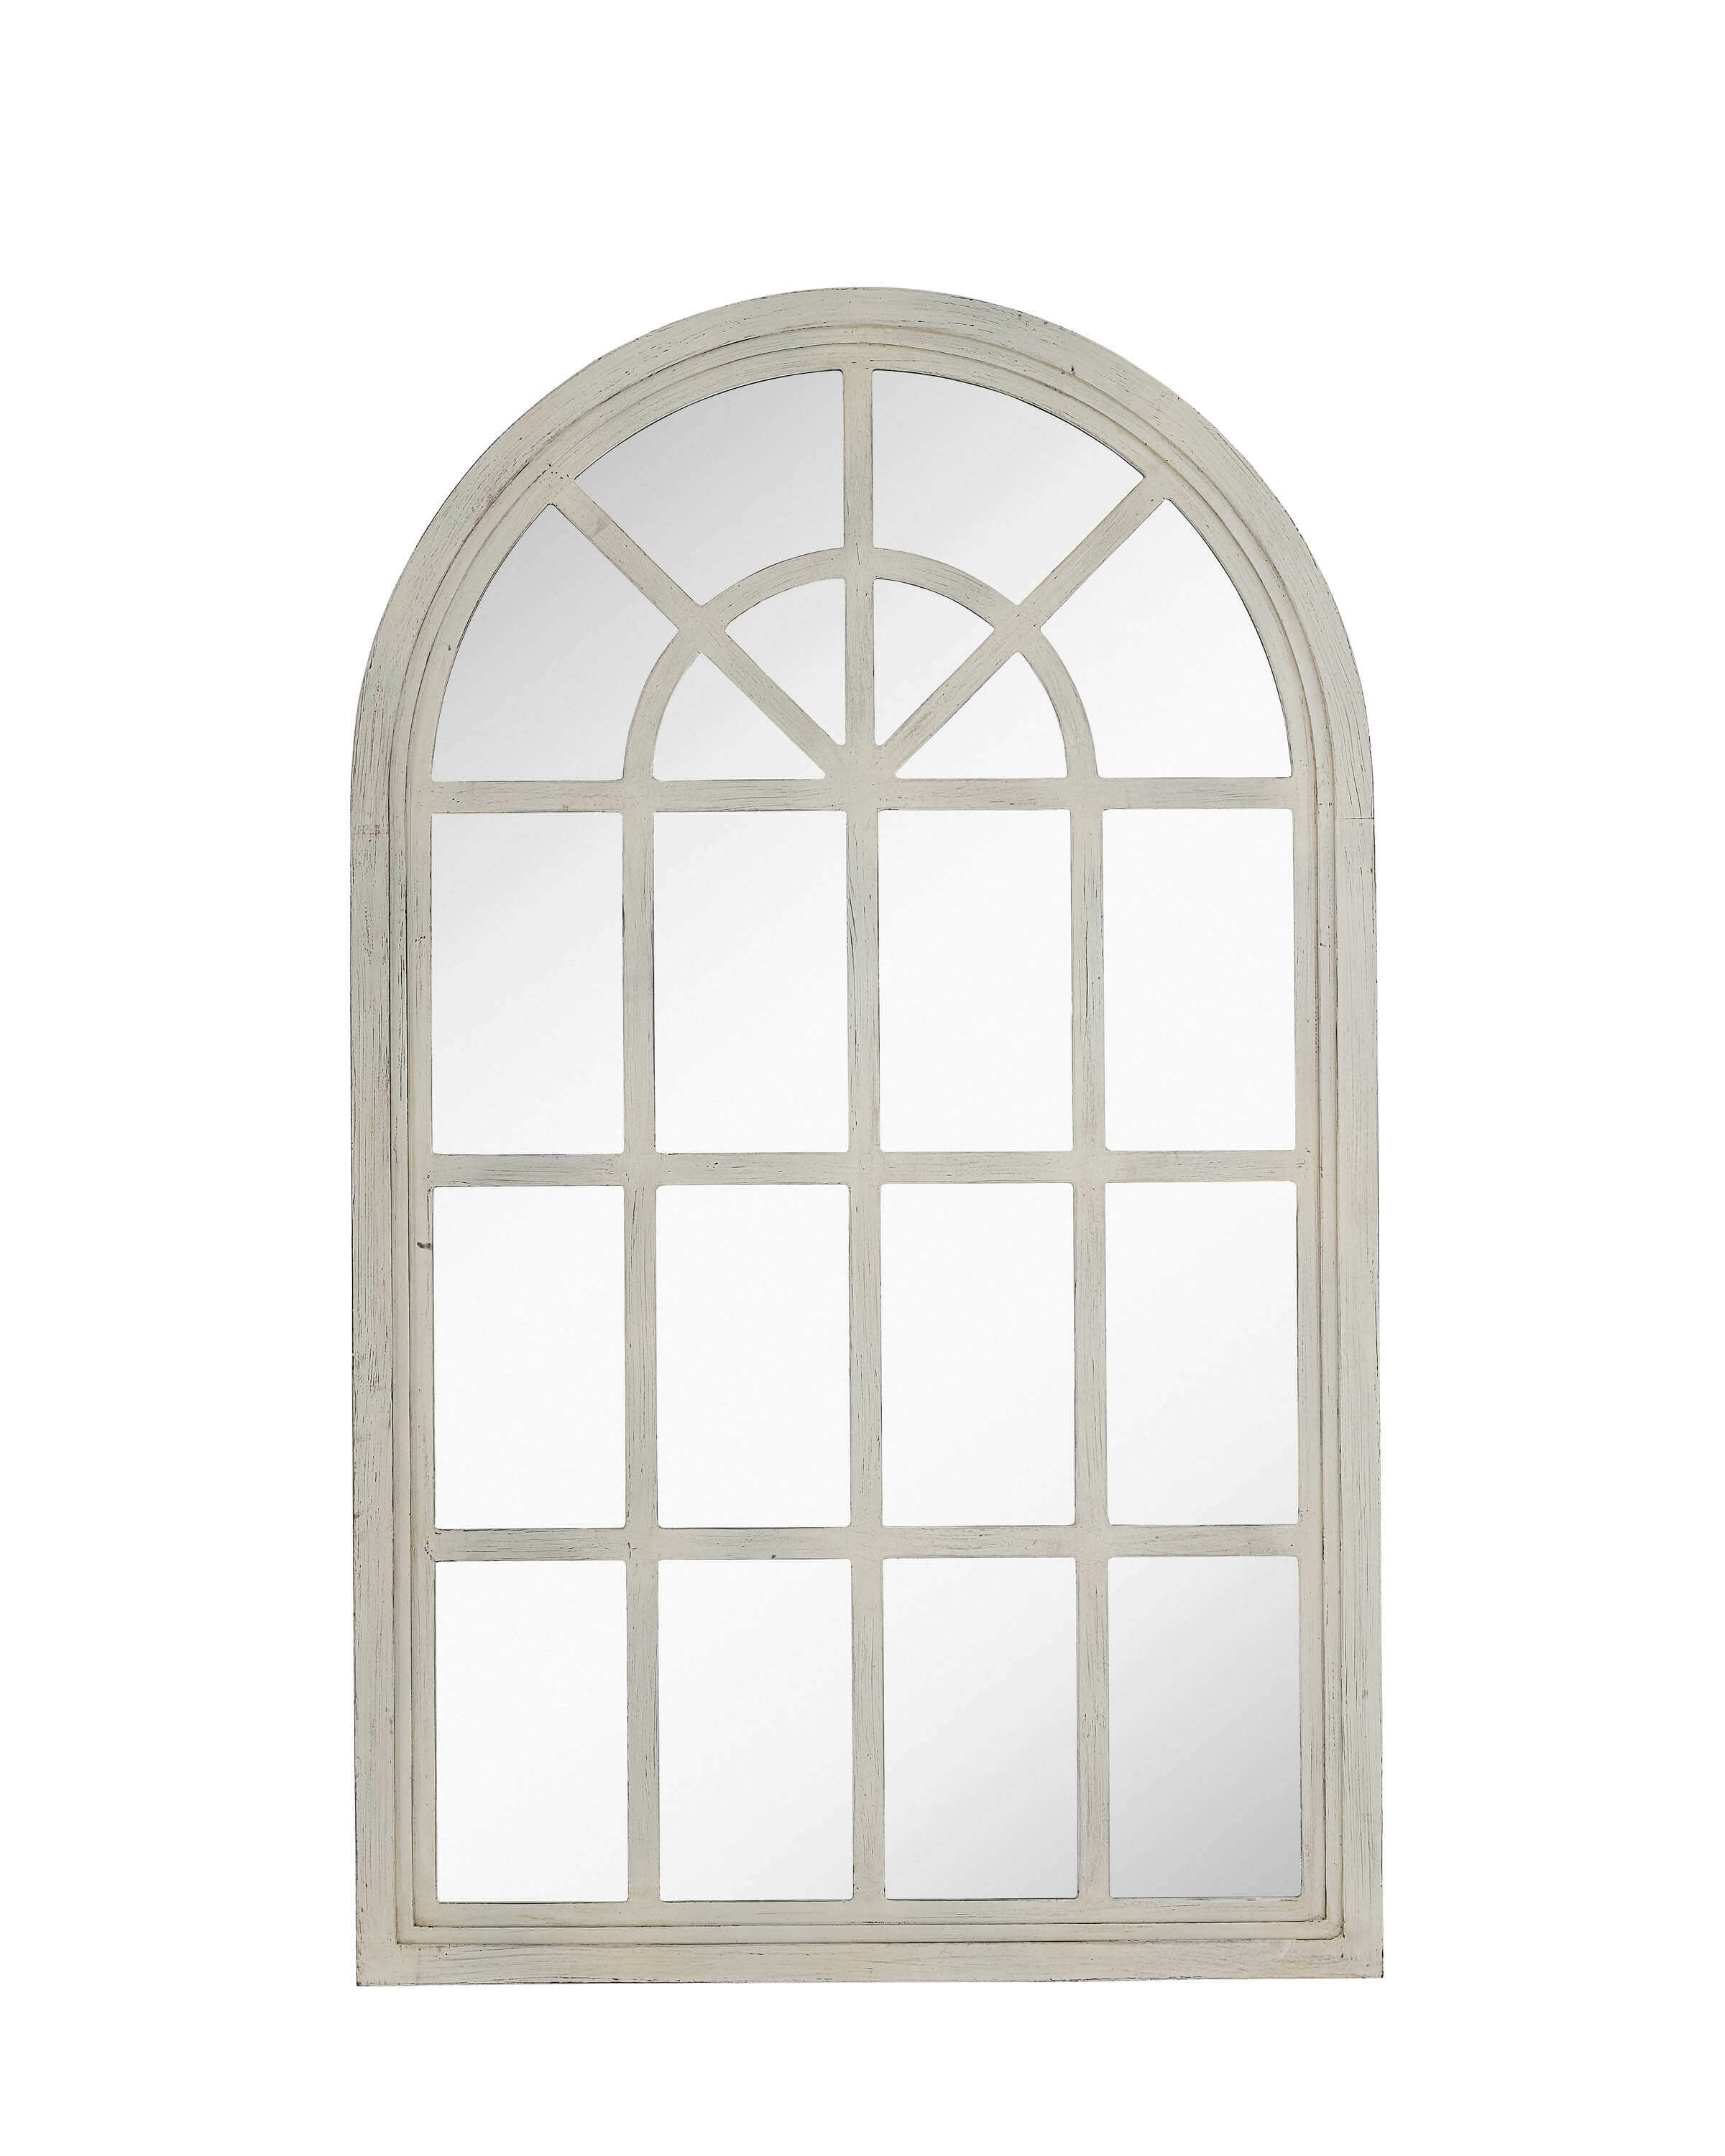 Picture Diy Window Decorative Menards Mirrors Gold Scenic Intended For Dedrick Decorative Framed Modern And Contemporary Wall Mirrors (Image 16 of 20)